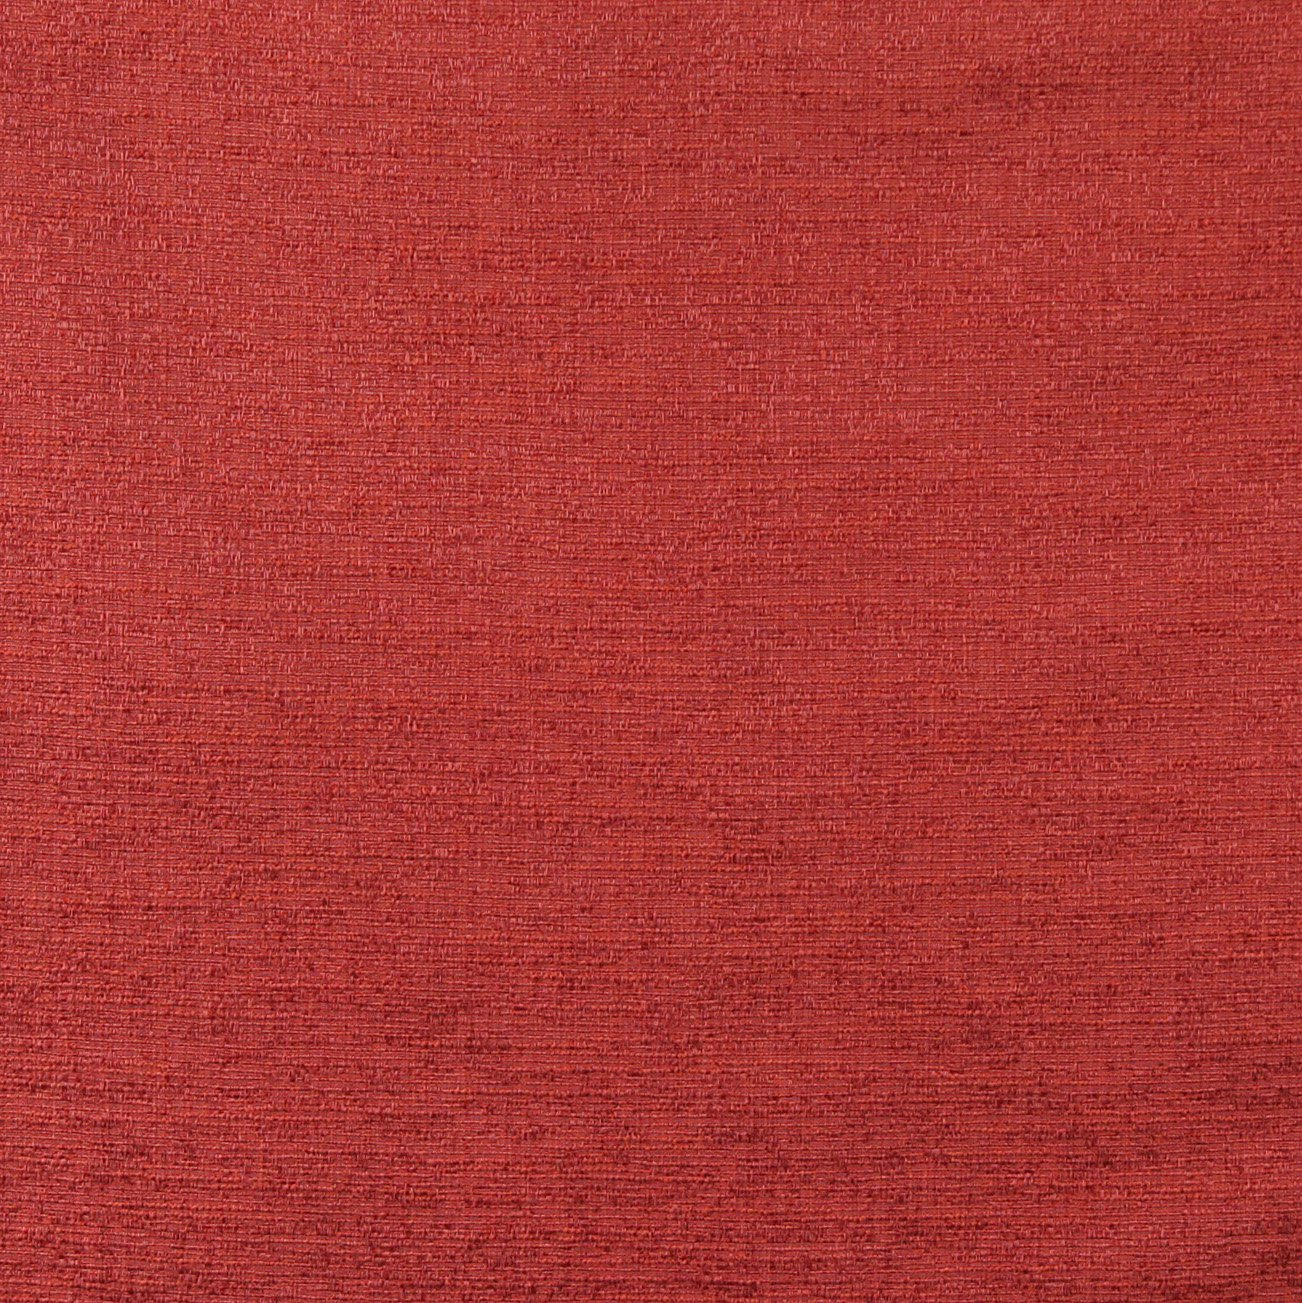 C132 Spice Red Textured Solid Jacquard Linen Look